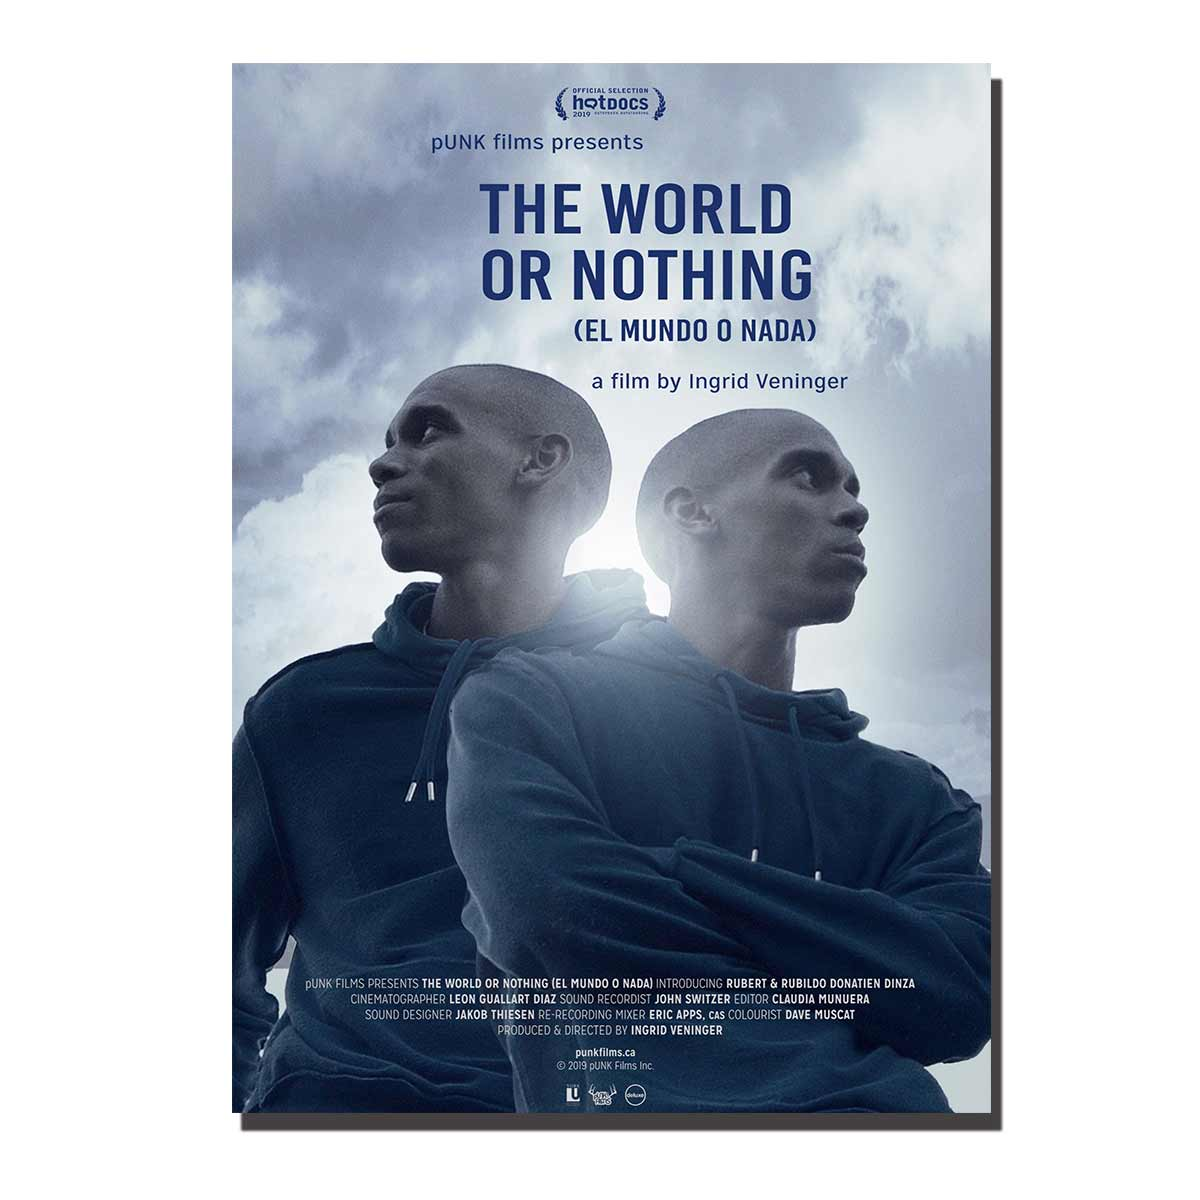 C265 The World or Nothing Movie Hot Print Fabric Art Silk Poster Pictures 24x36 12x18 27x40 Canvas Gift image